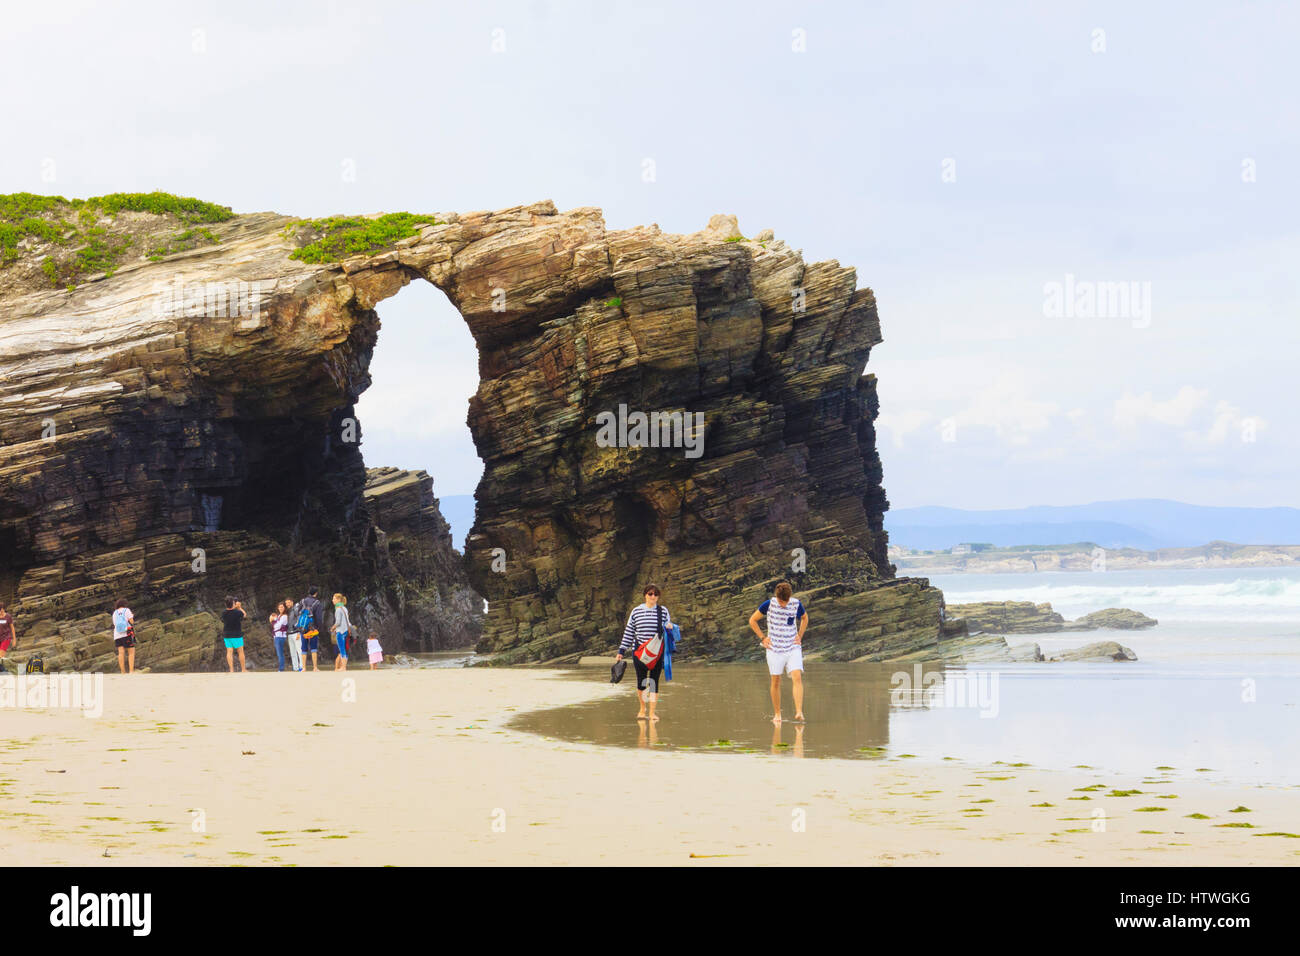 Tourists by a stone arch at Beach of the Cathedrals Natural Monument at Ribadeo municipality, Lugo province, Galicia, - Stock Image